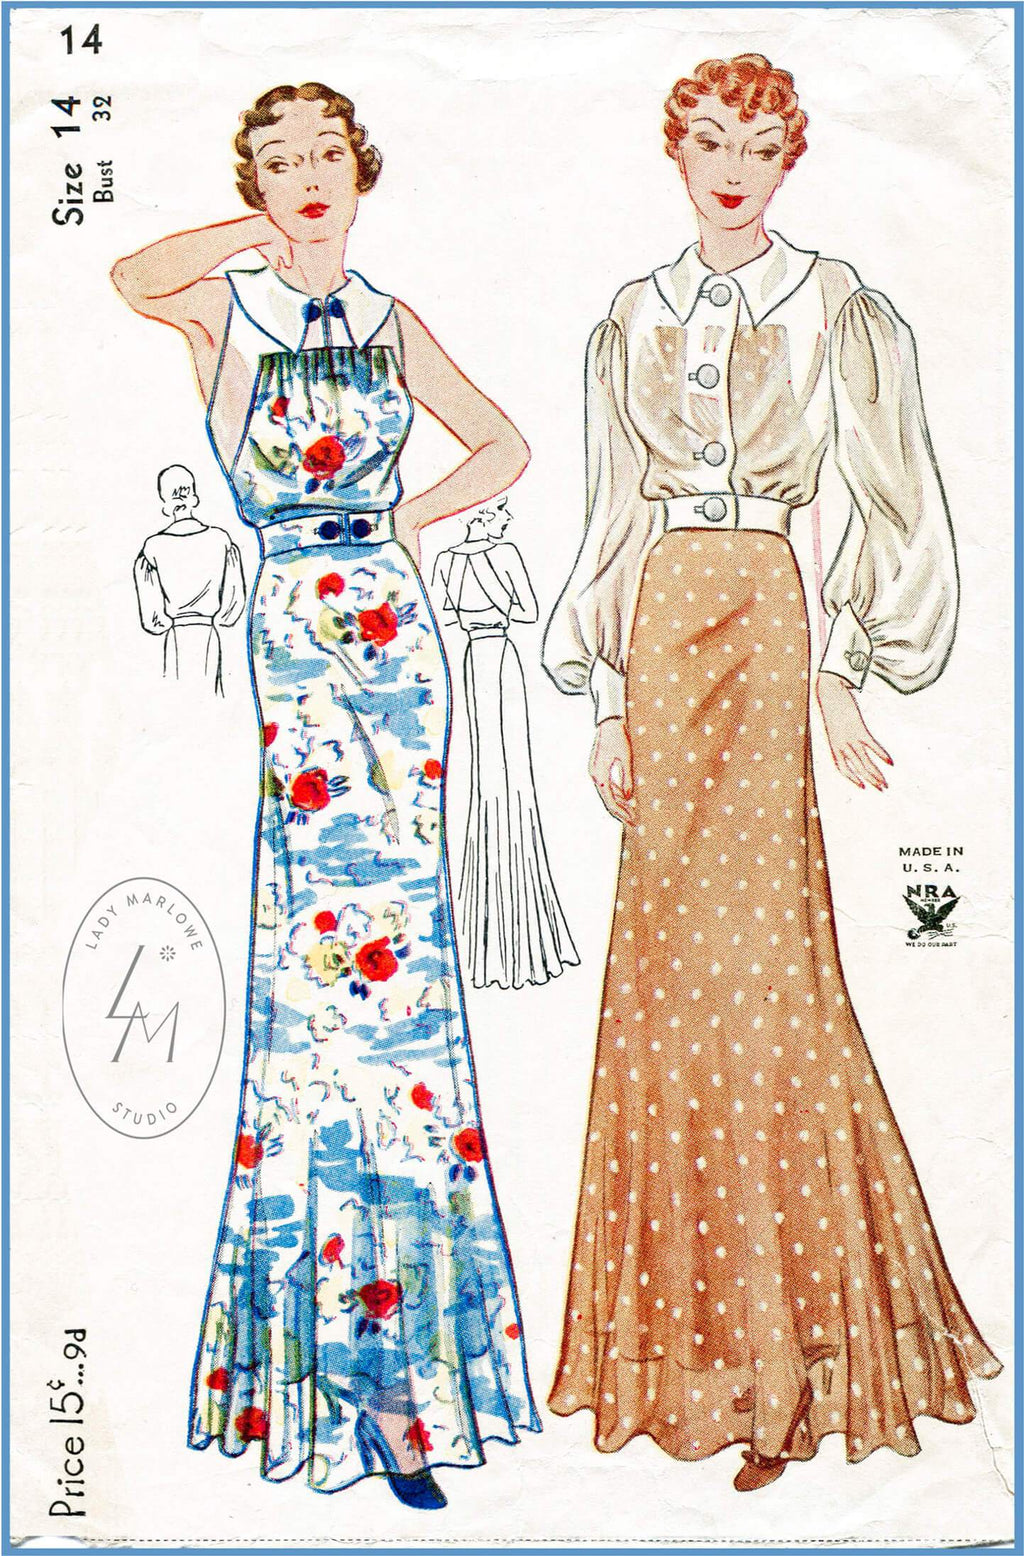 Simplicity 1754 1930s vintage sewing pattern 1930 30s evening dress